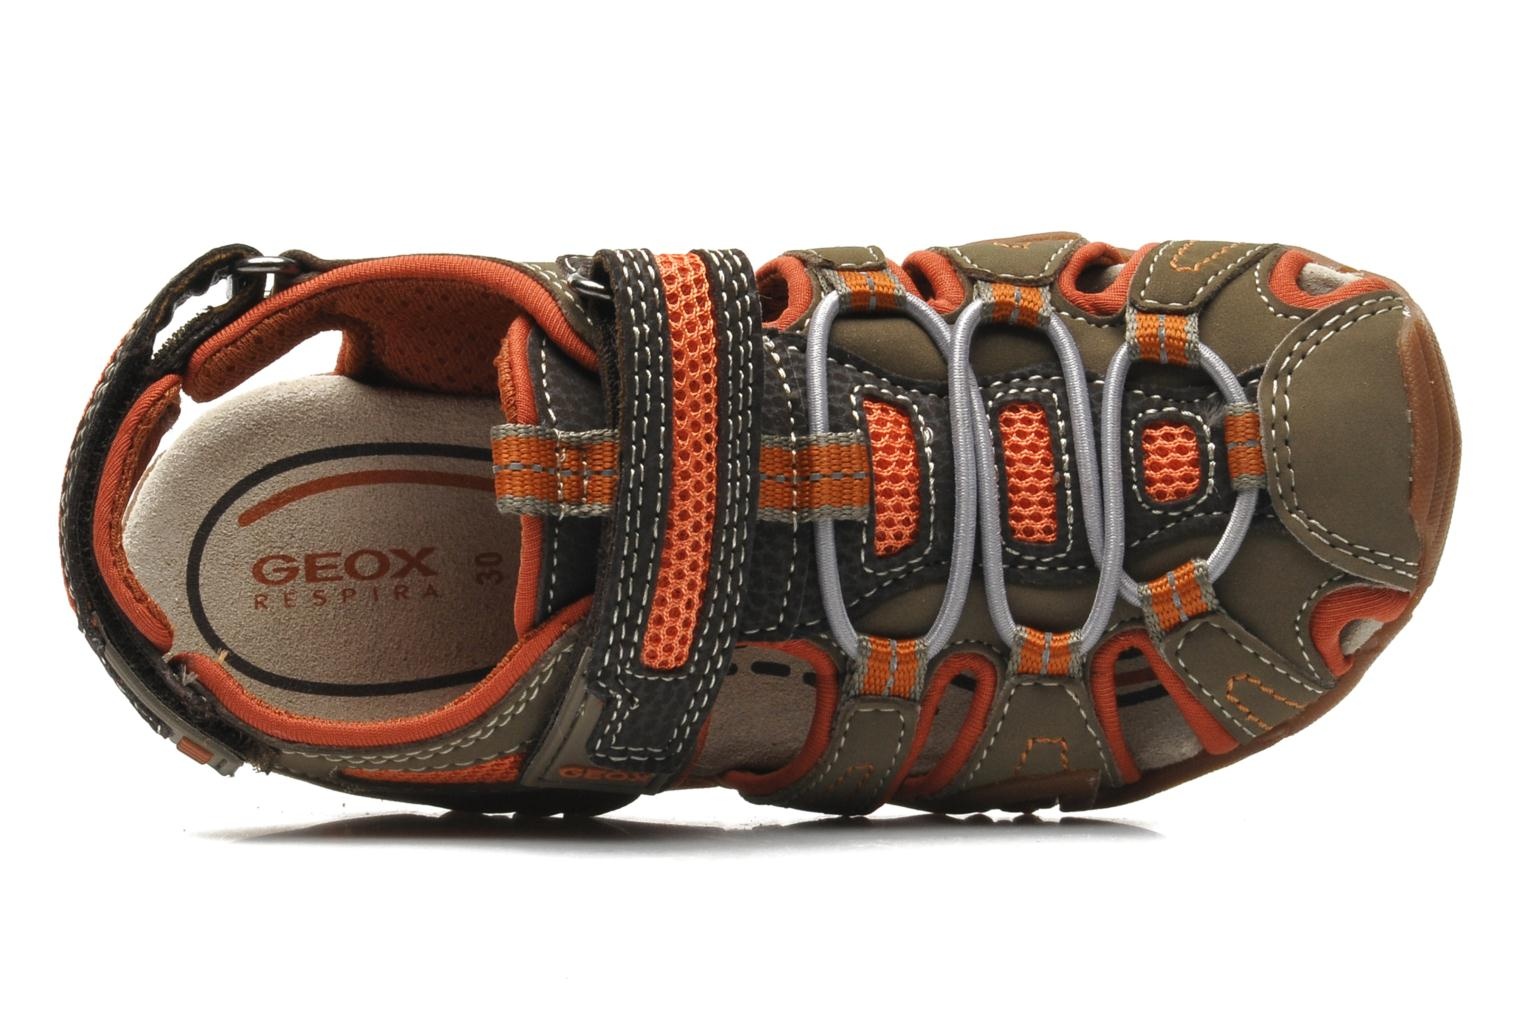 J Sand Kraze G J5224G Brown/orange